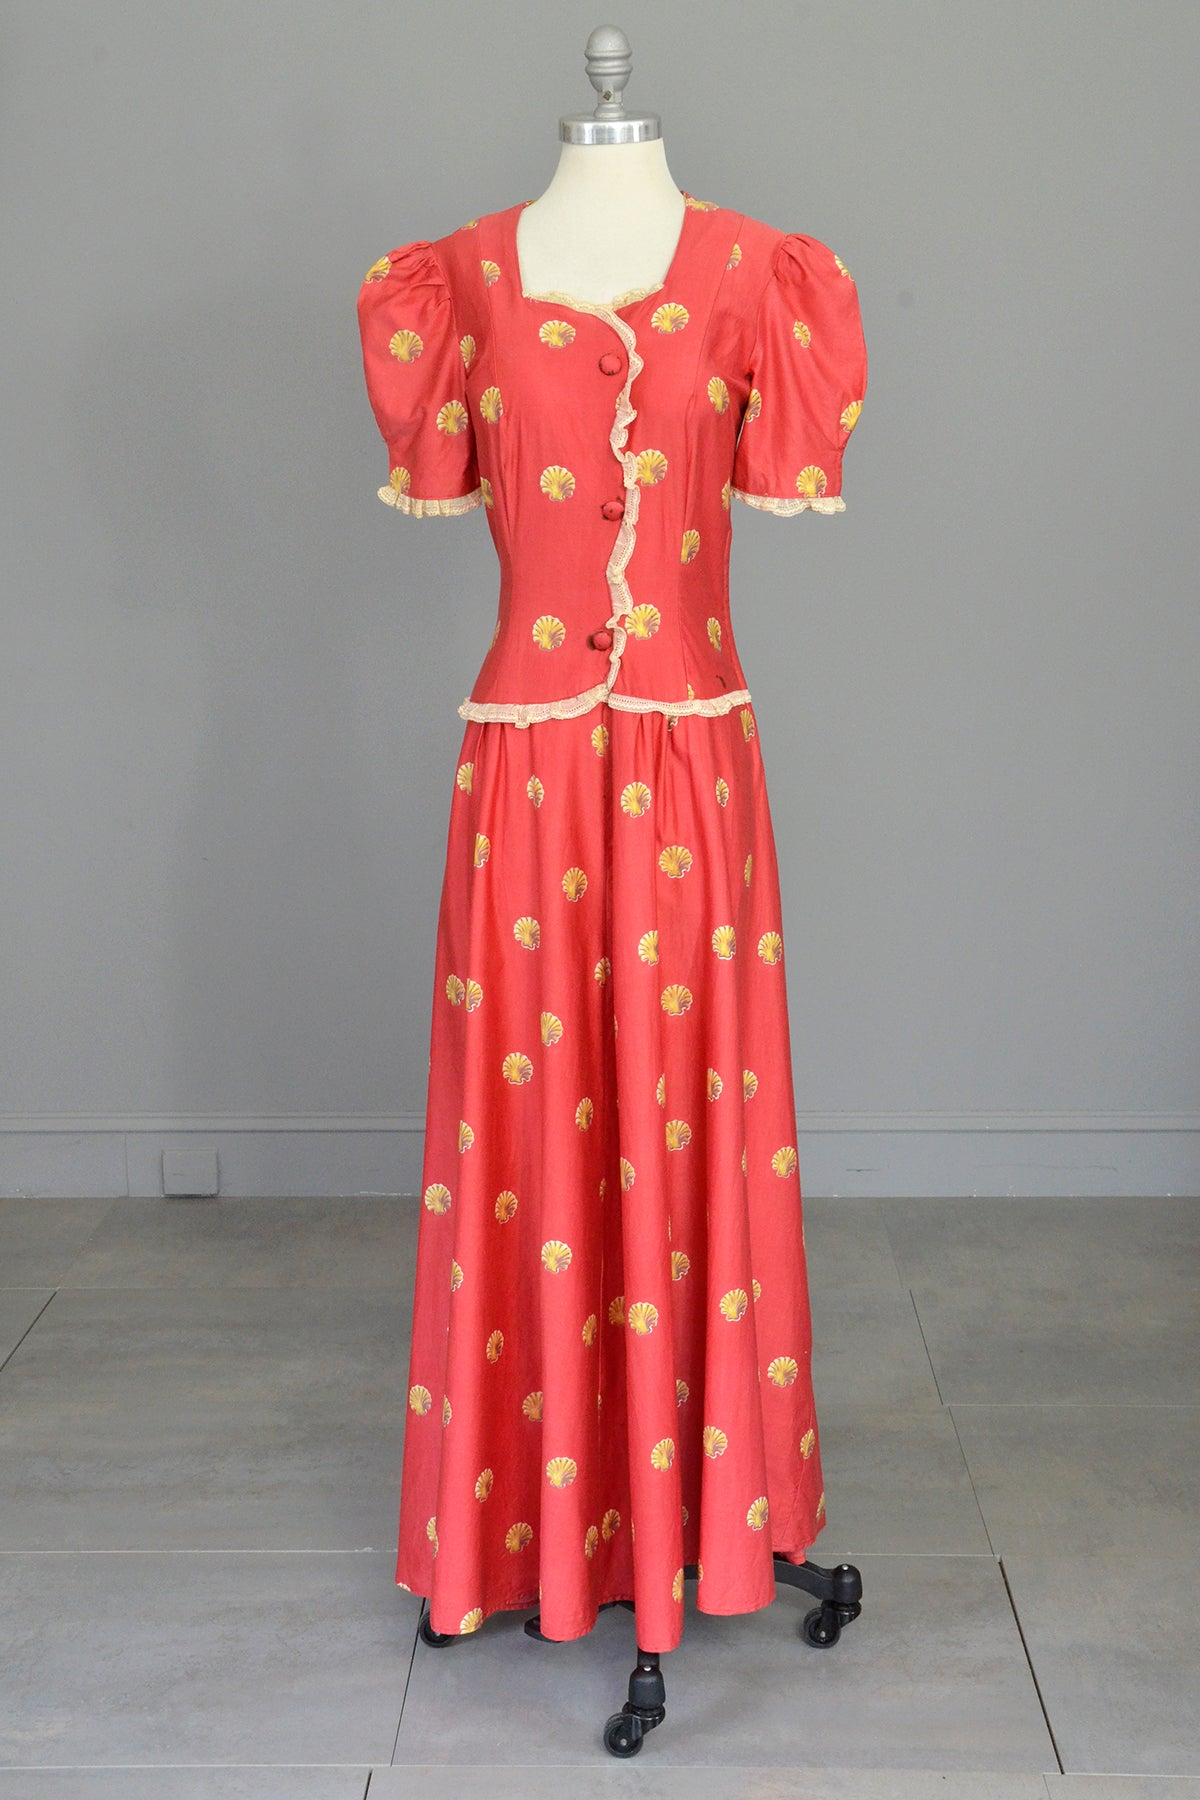 1930s Seashell Novelty Print Puff Sleeve Peasant Folk Dress Gown